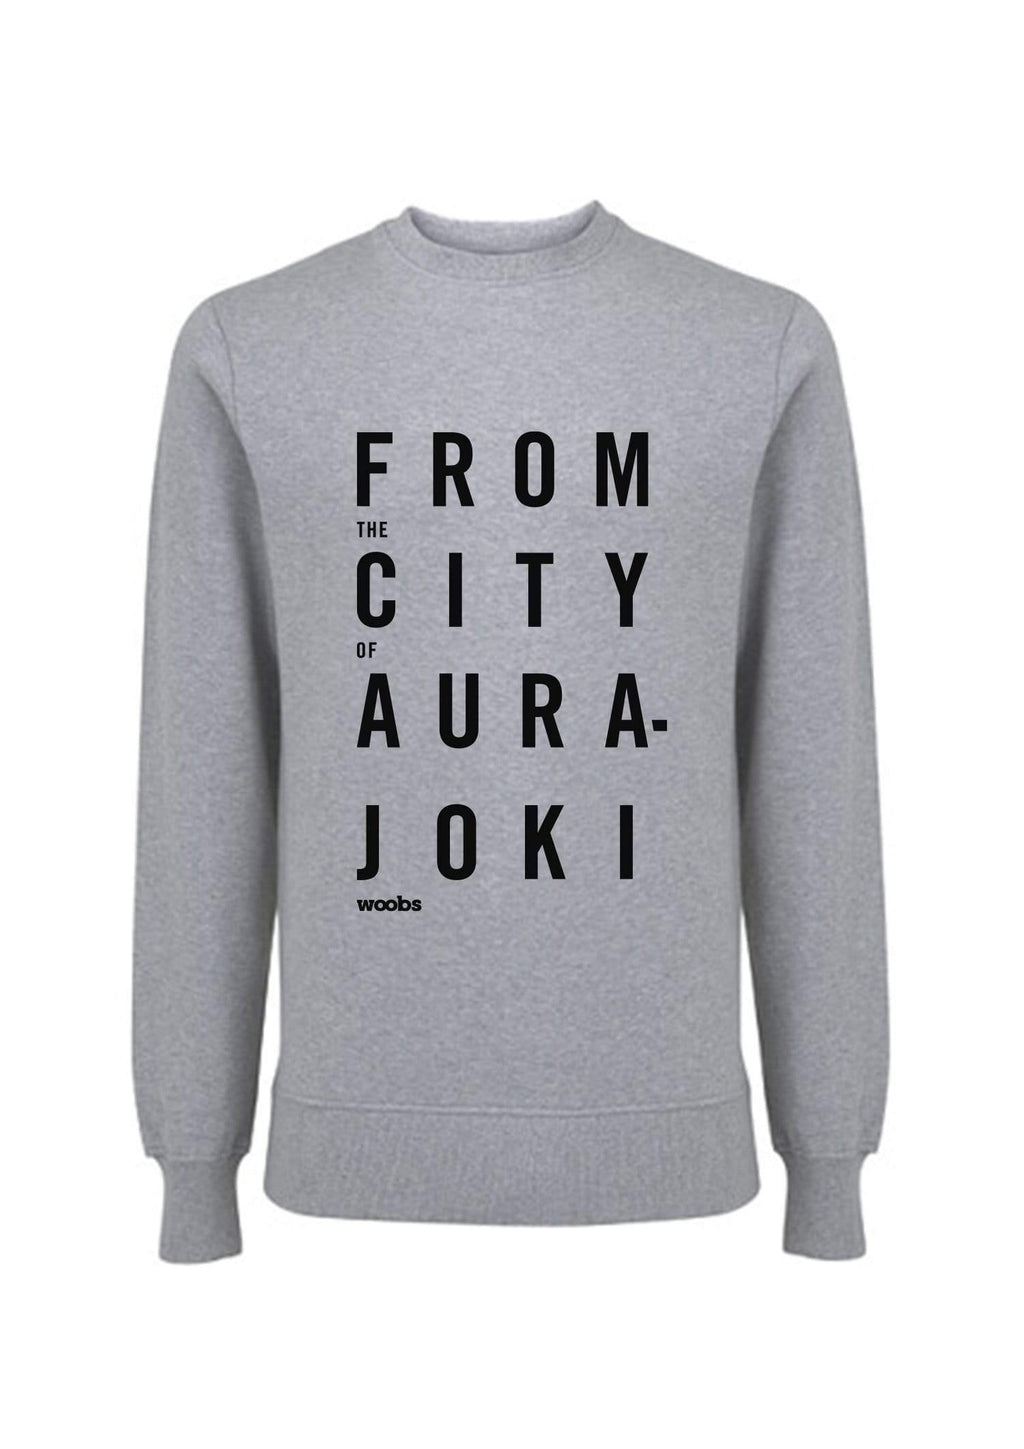 From The City Of Aurajoki, Lyric, Sweatshirt, Gray, PRE-SALE